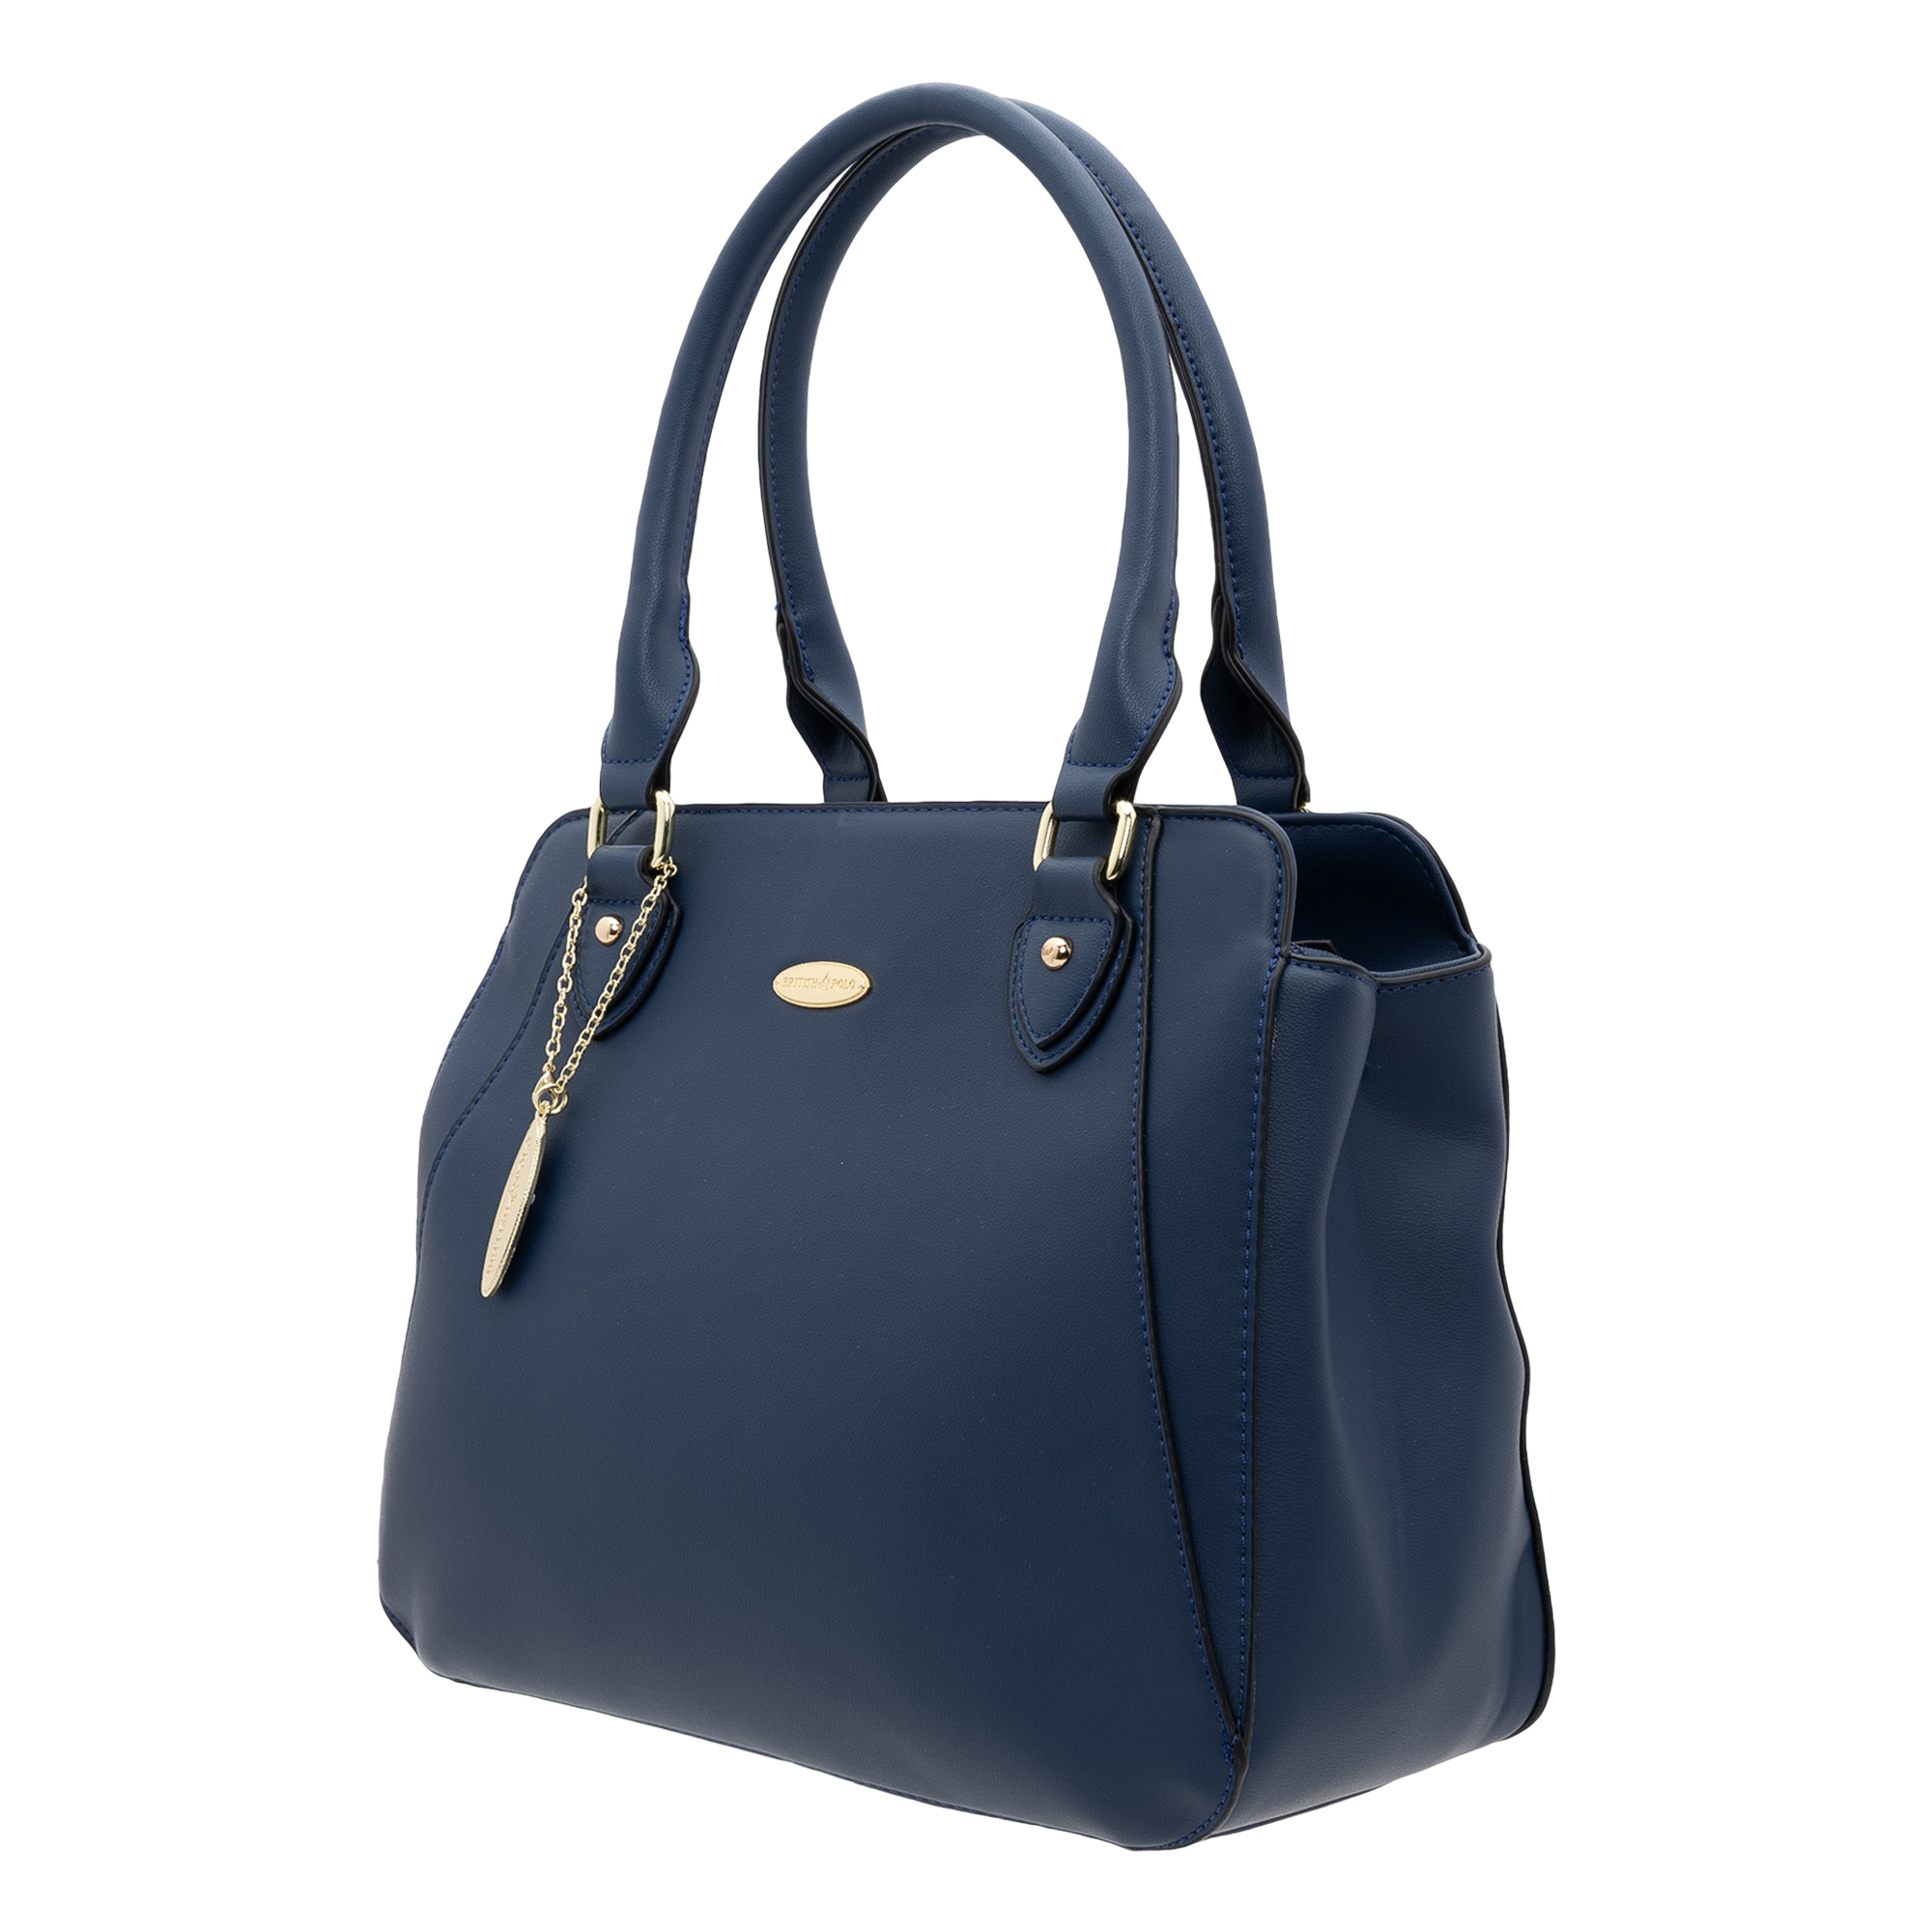 British Polo Casual Tote Bag